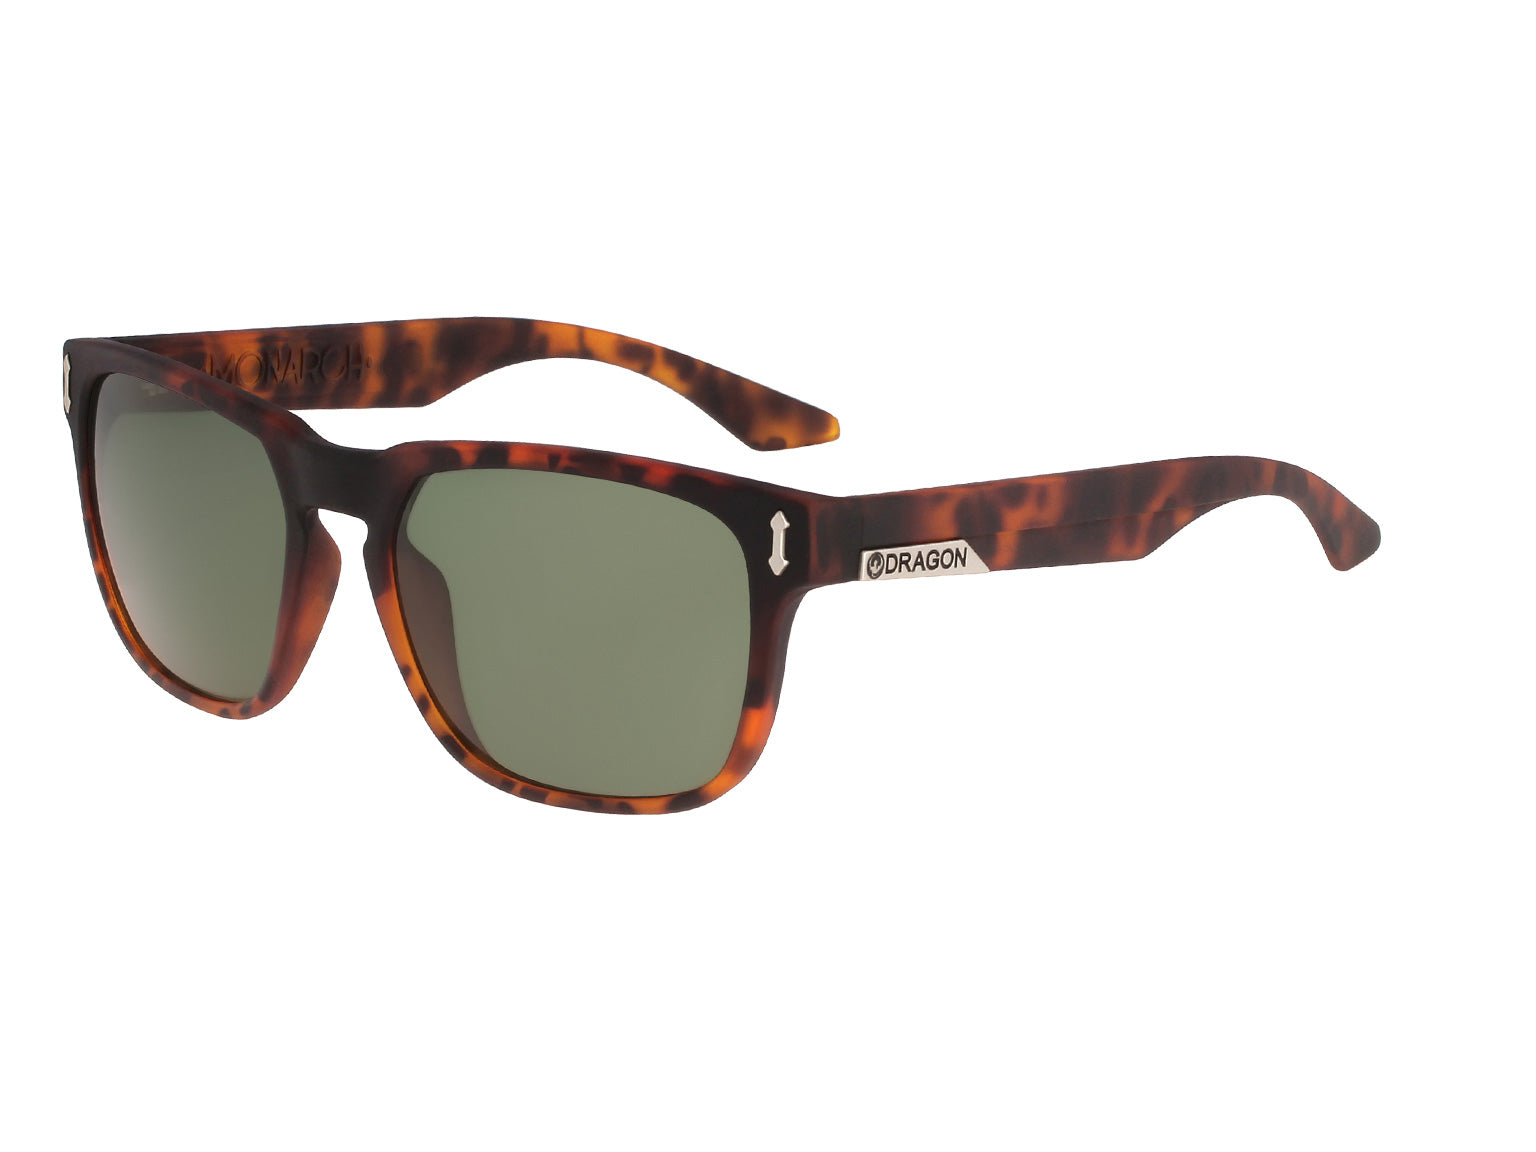 MONARCH - Matte Tortoise ; with Lumalens G15 Green Lens